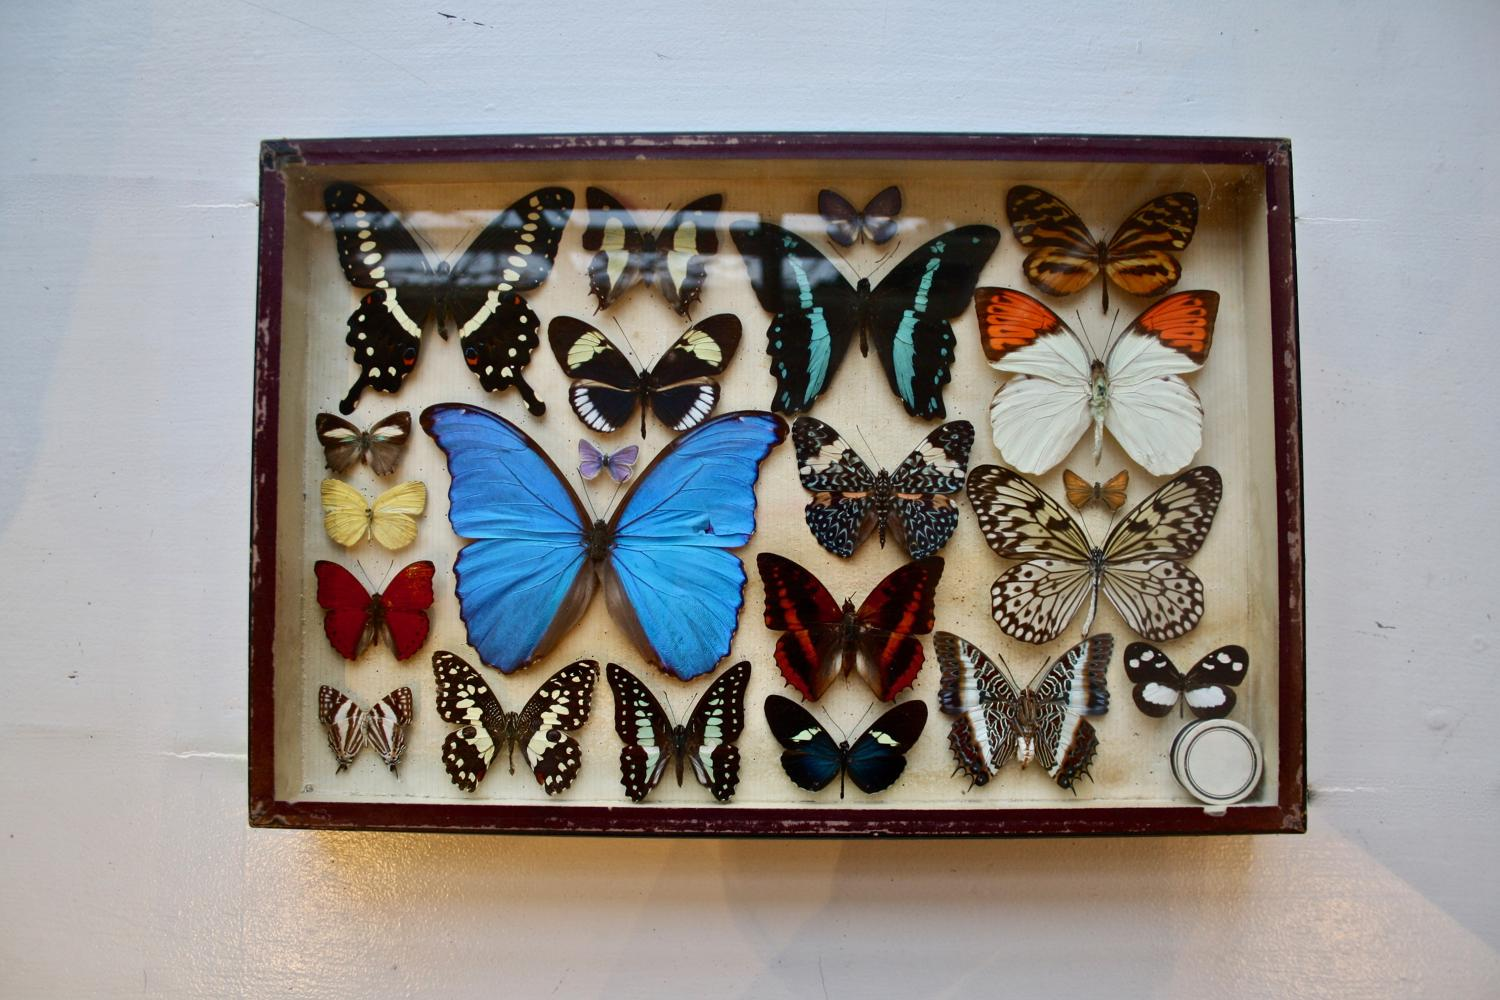 Cased butterflies